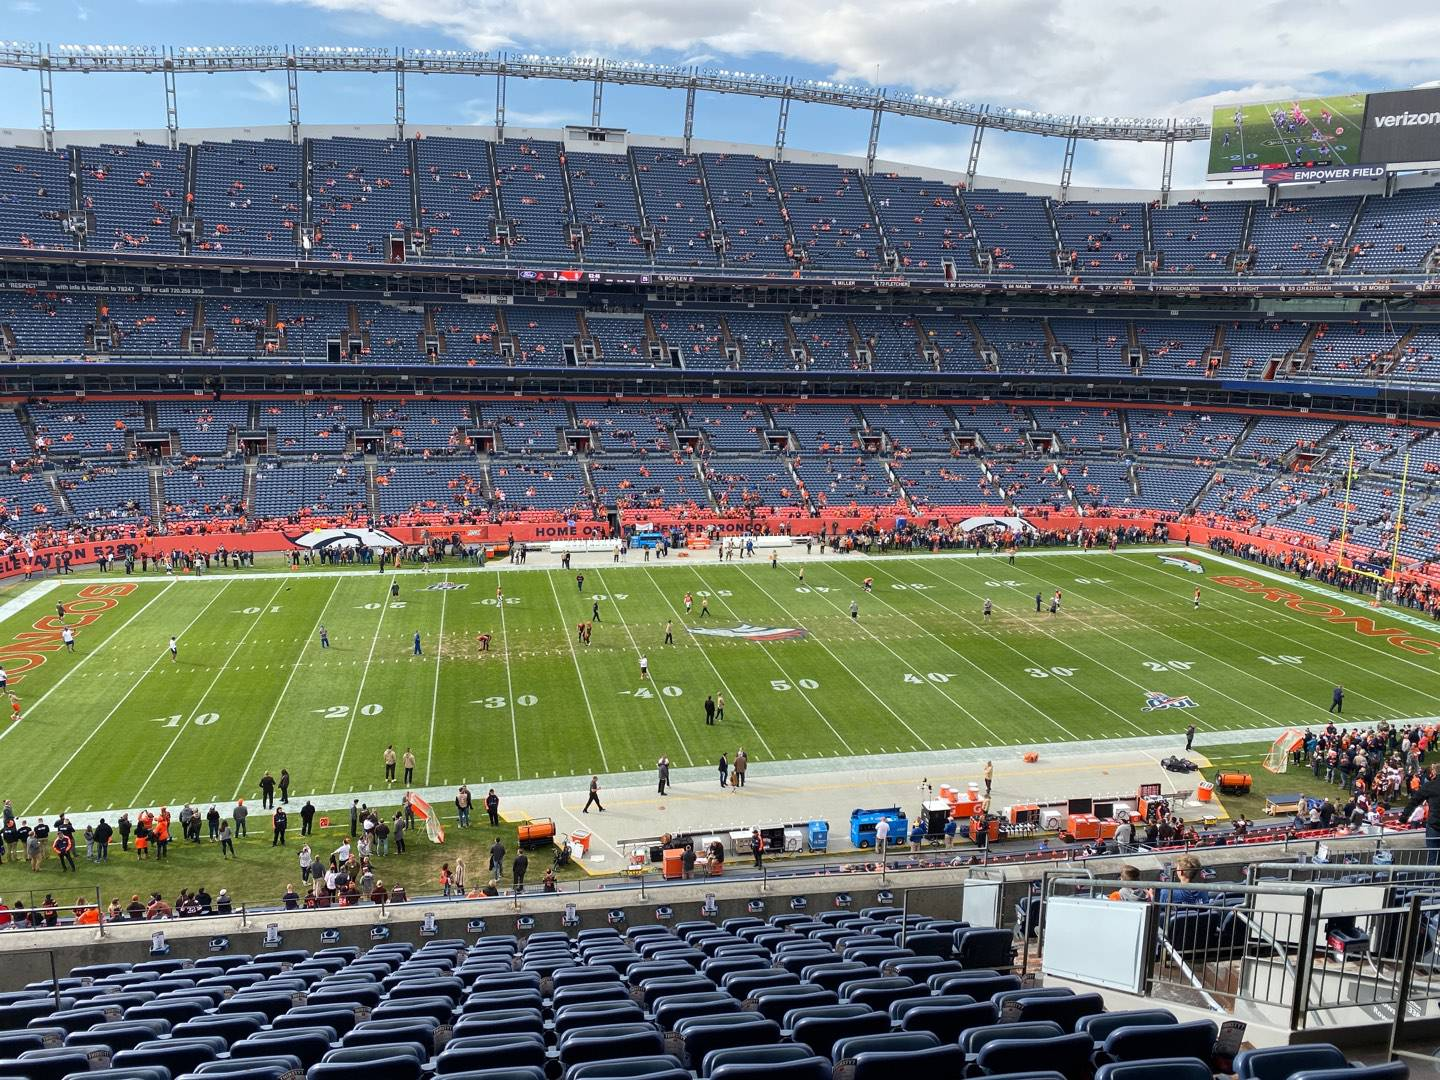 Empower Field at Mile High Stadium Section 339 Row 14 Seat 8